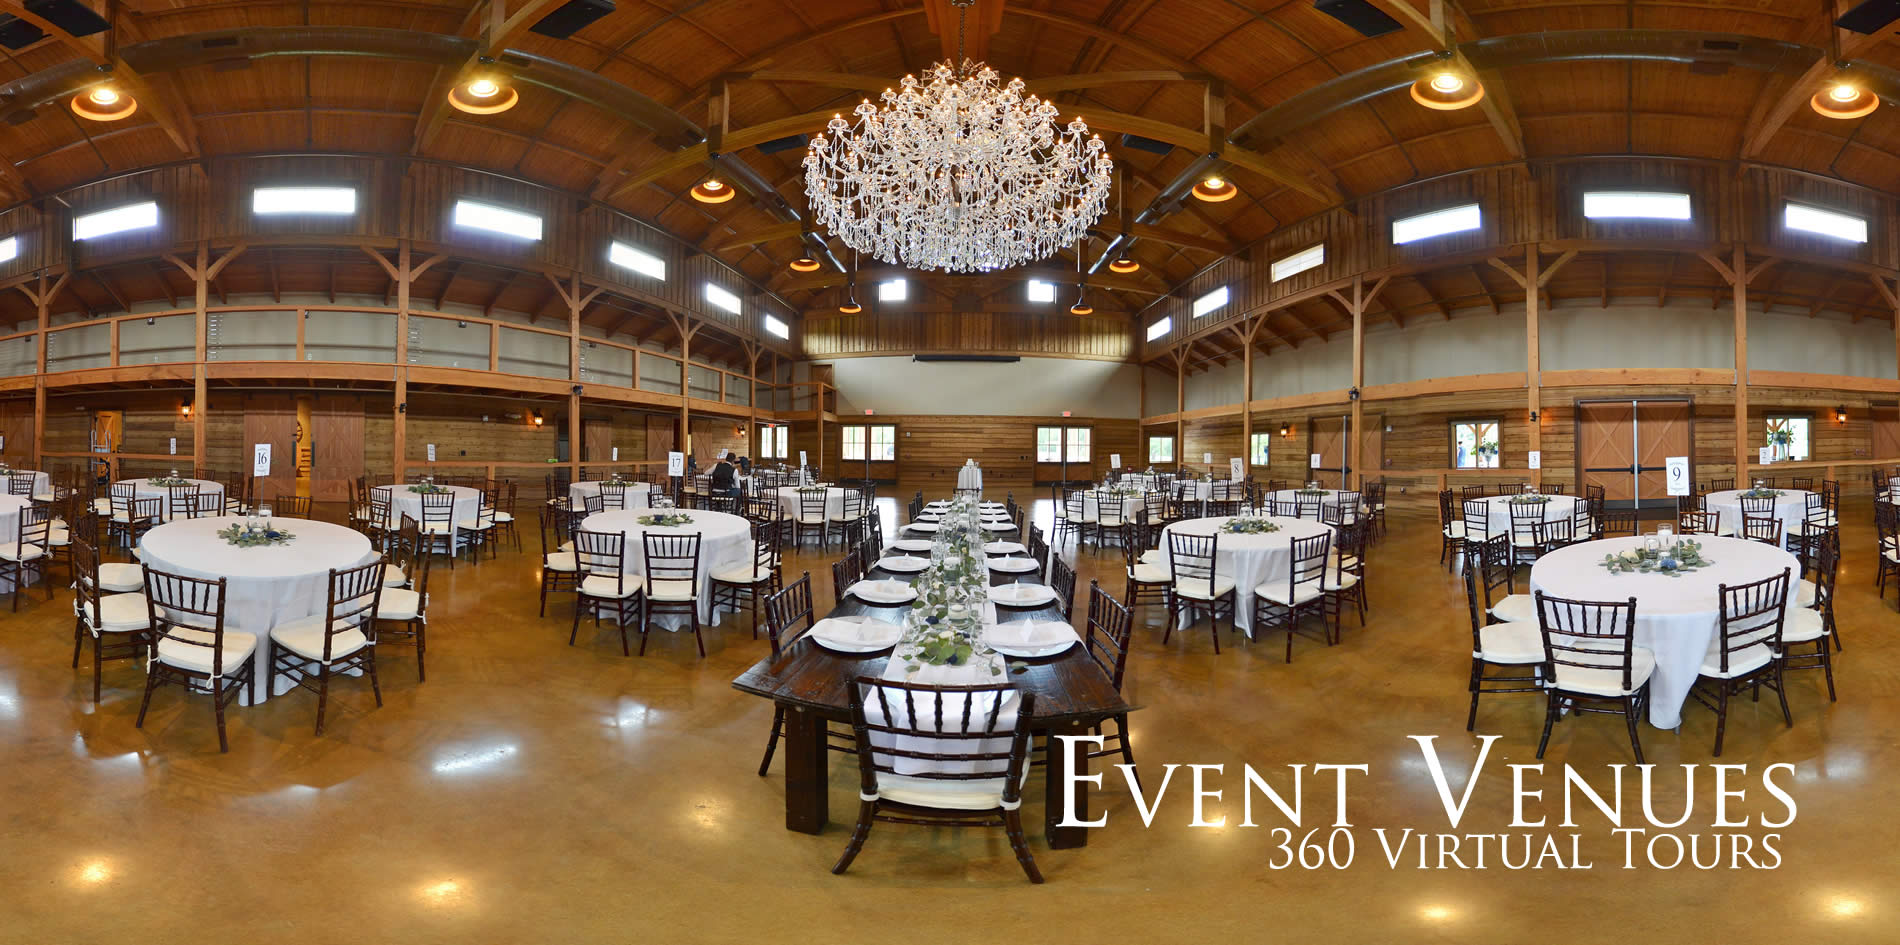 local event venues in the south everything wedding